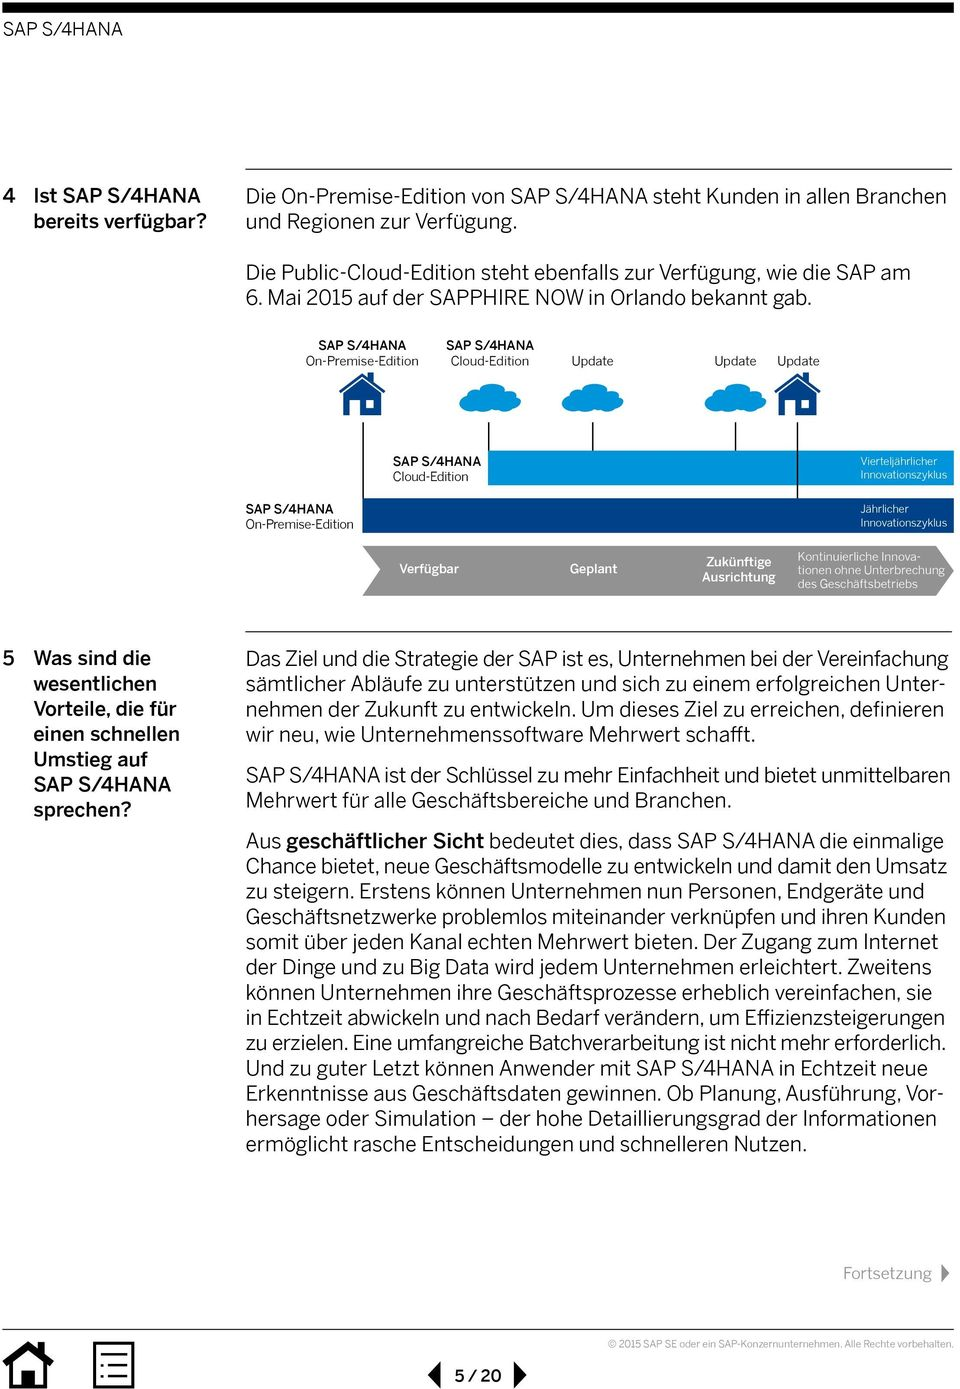 On-Premise-Edition Cloud-Edition Update Update Update Cloud-Edition Vierteljährlicher Innovationszyklus On-Premise-Edition Jährlicher Innovationszyklus Verfügbar Geplant Zukünftige Ausrichtung